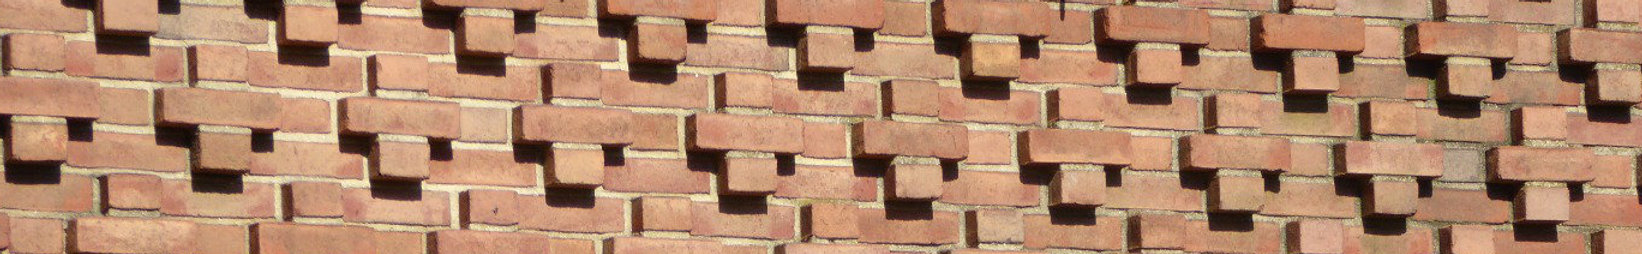 Brickwork pattern on the exterior of the Tenafly Public Library.